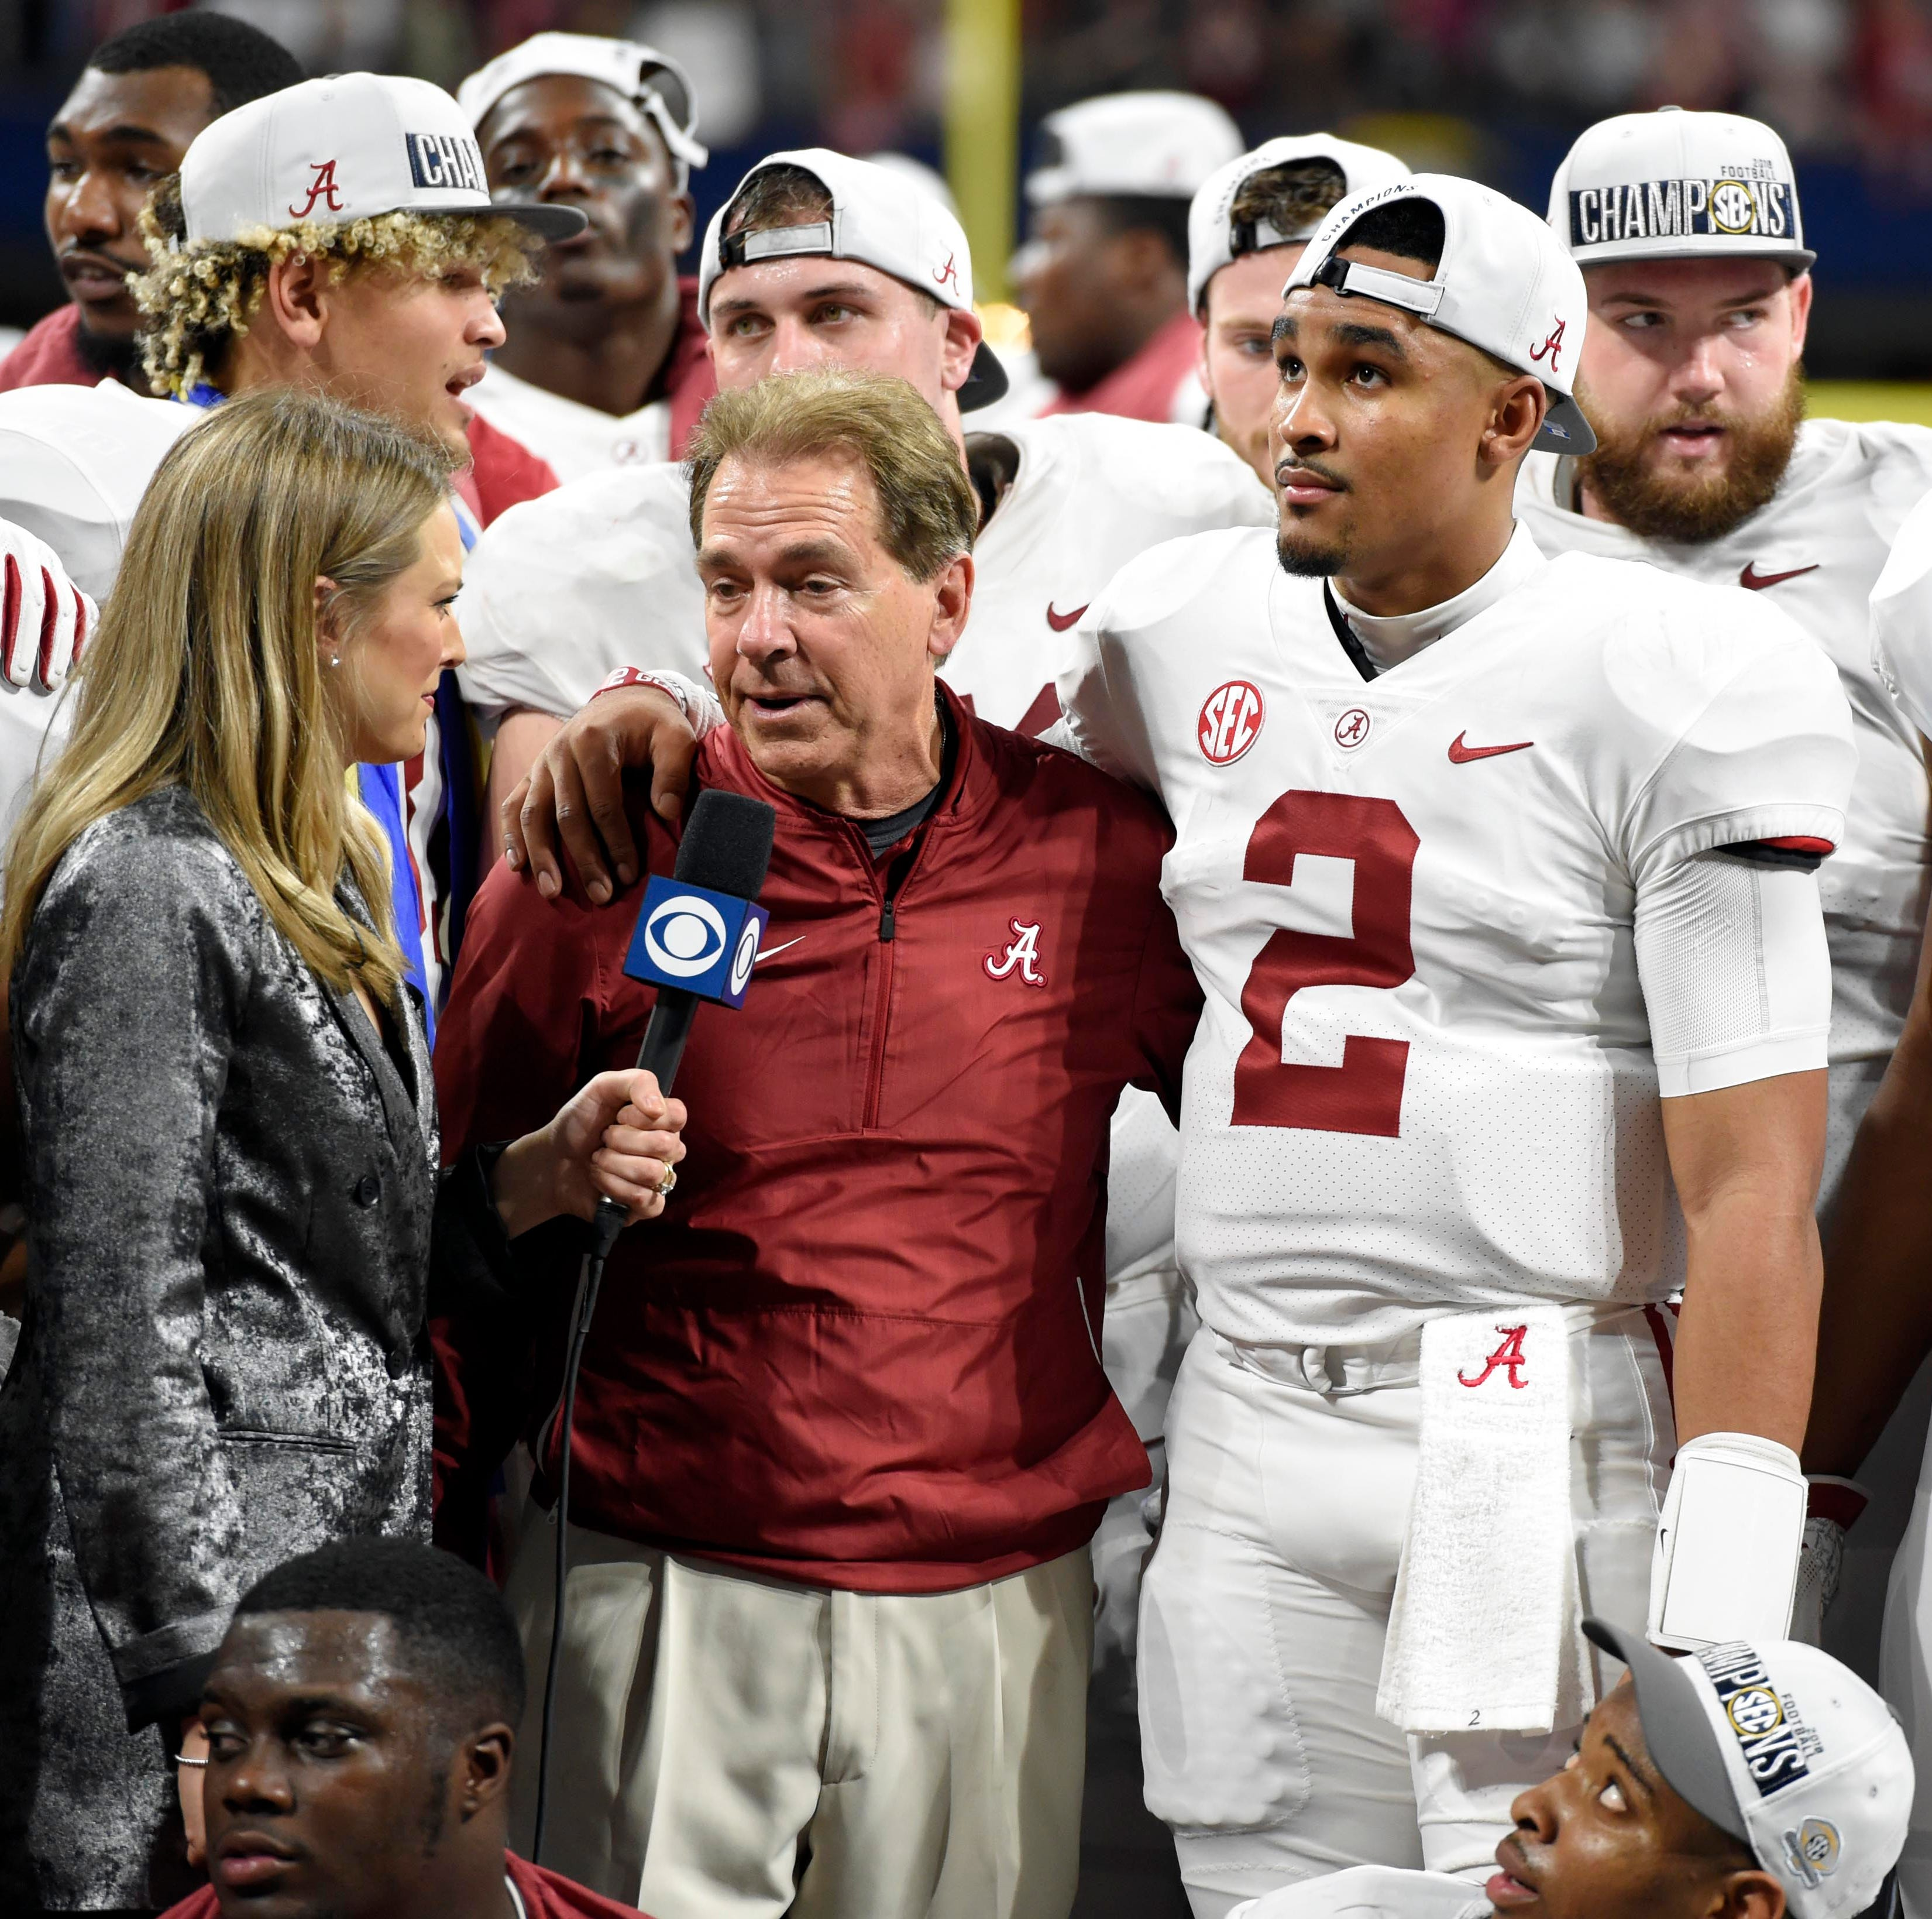 Alabama Crimson Tide head coach Nick Saban is interviewed after defeating the Georgia Bulldogs in the SEC championship game at Mercedes-Benz Stadium.